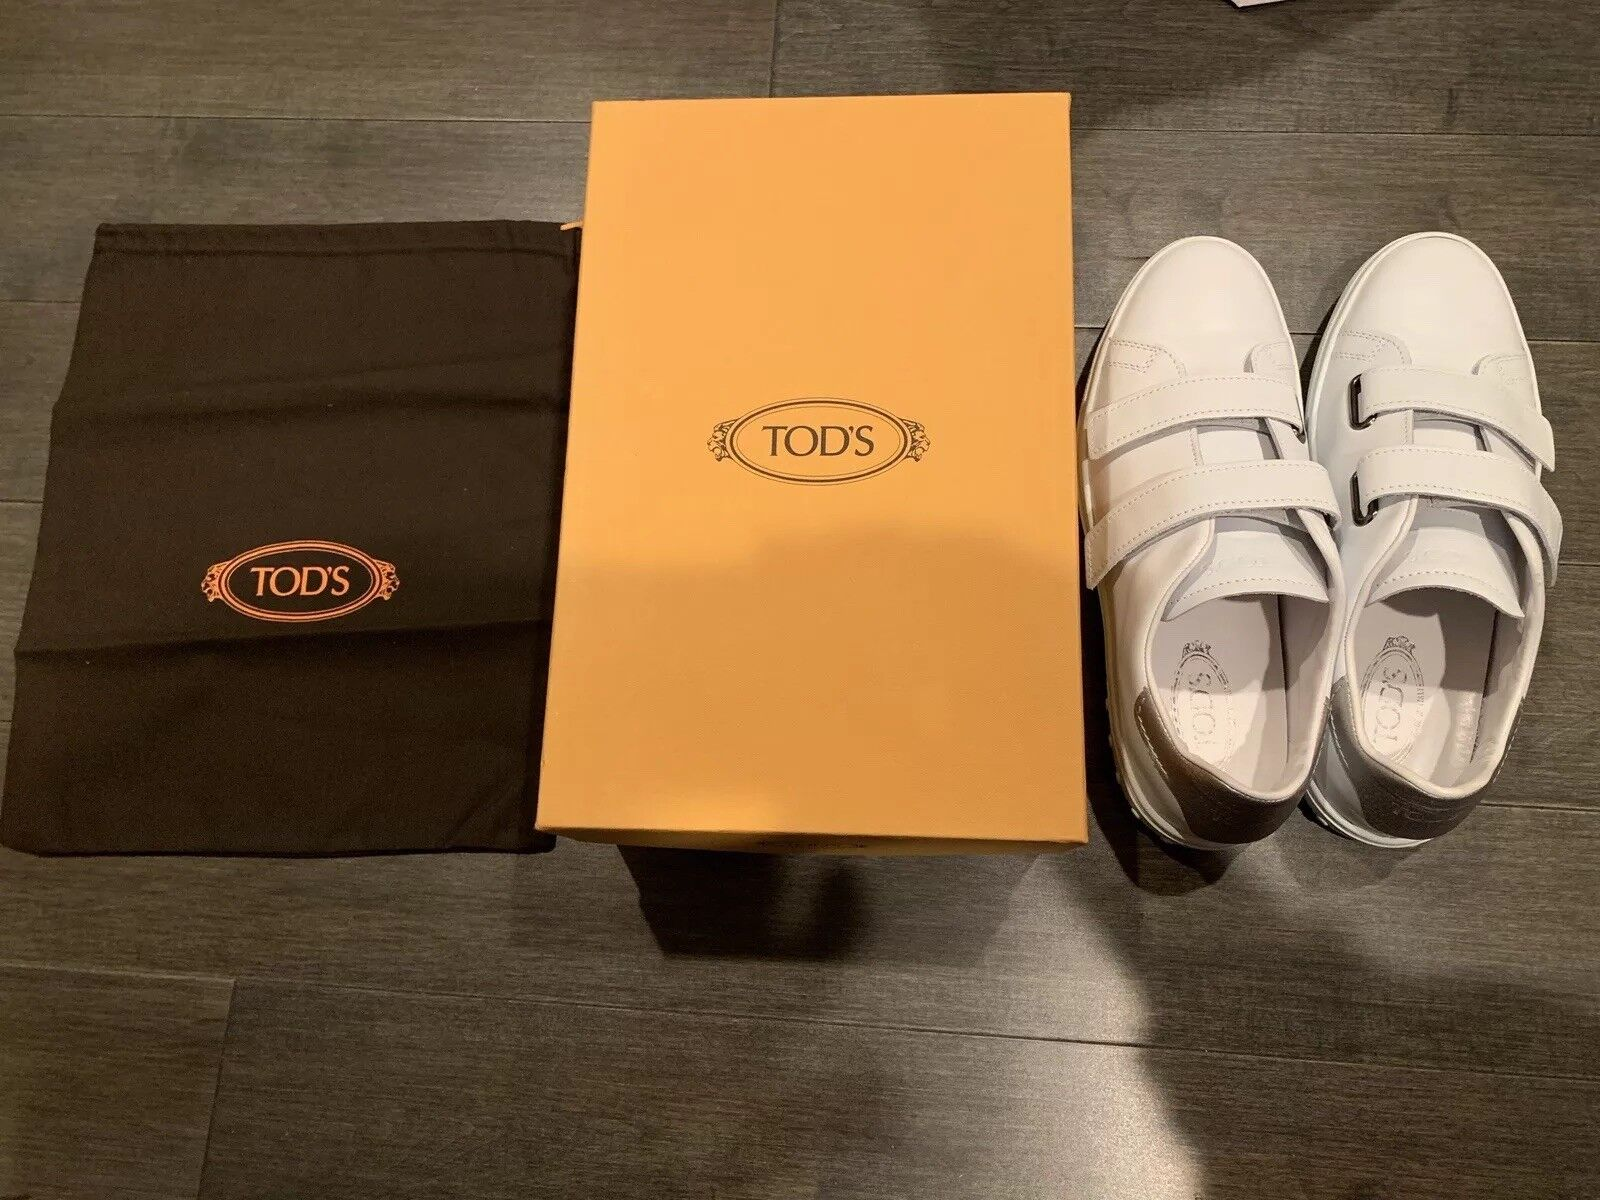 575+NEW TOD'S SPORT CASSETTA SNEAKERS Men's Size 11 White Leather Made In italy